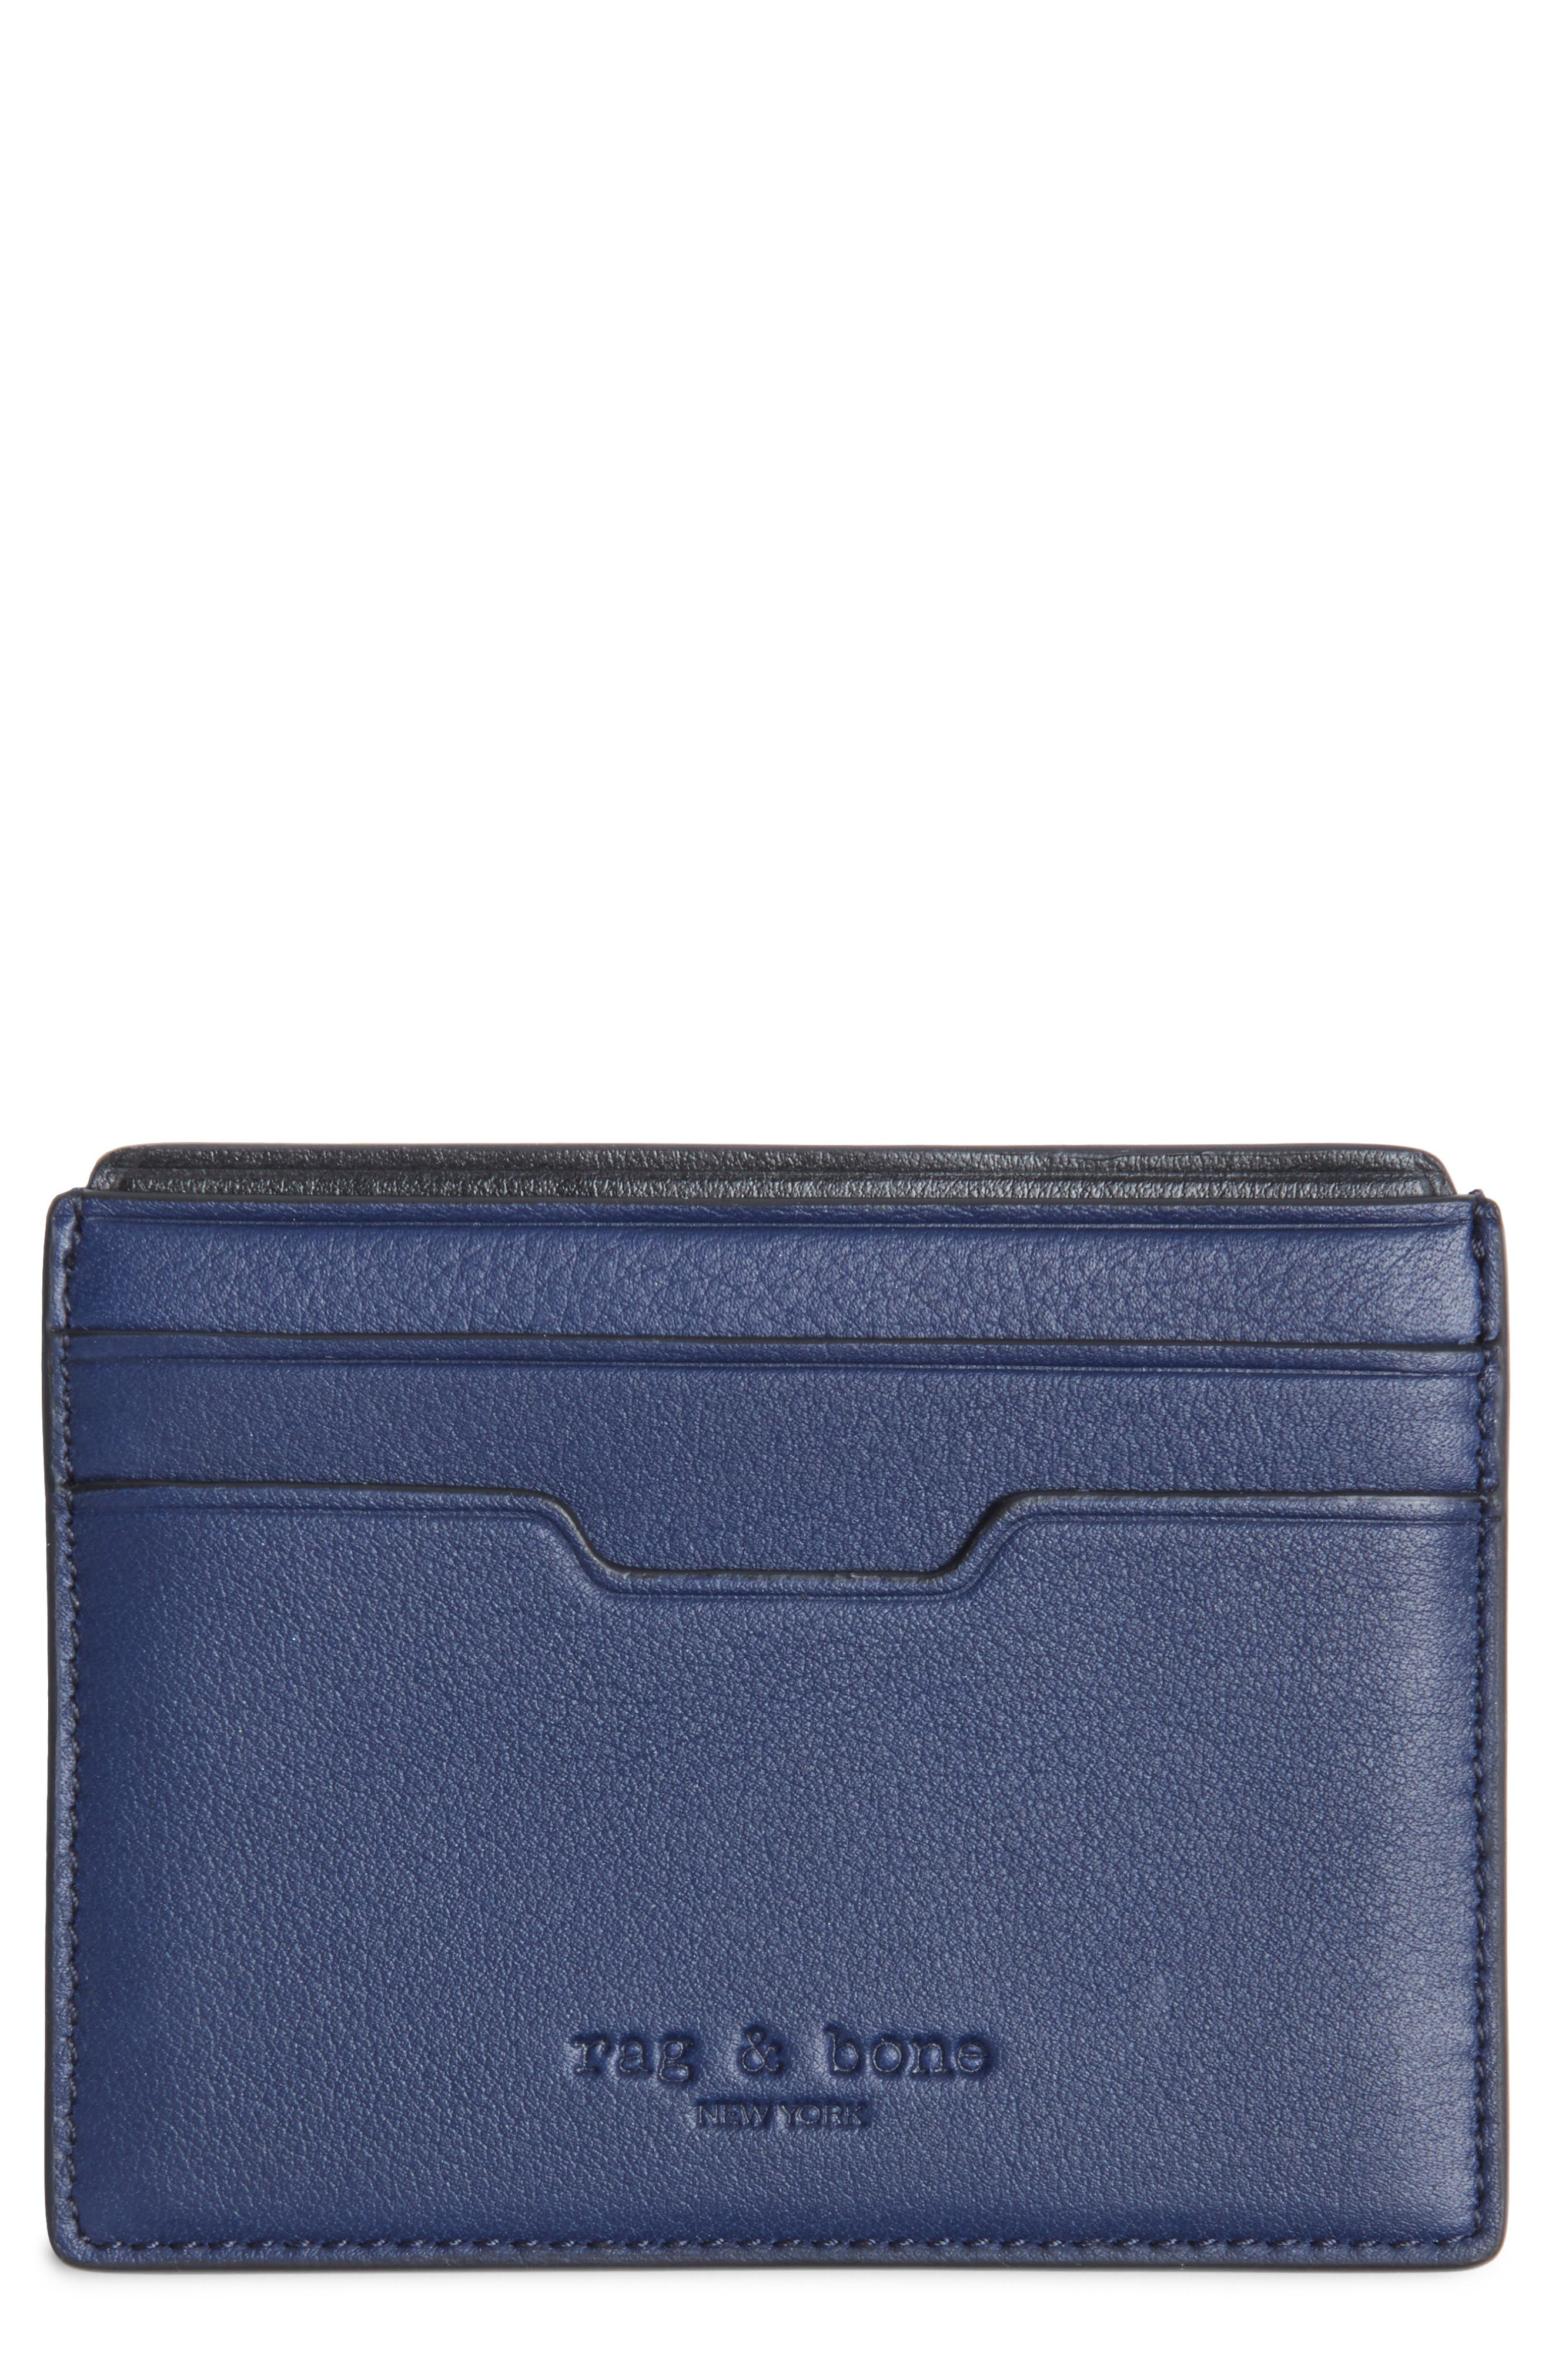 Leather Card Case,                         Main,                         color, 410